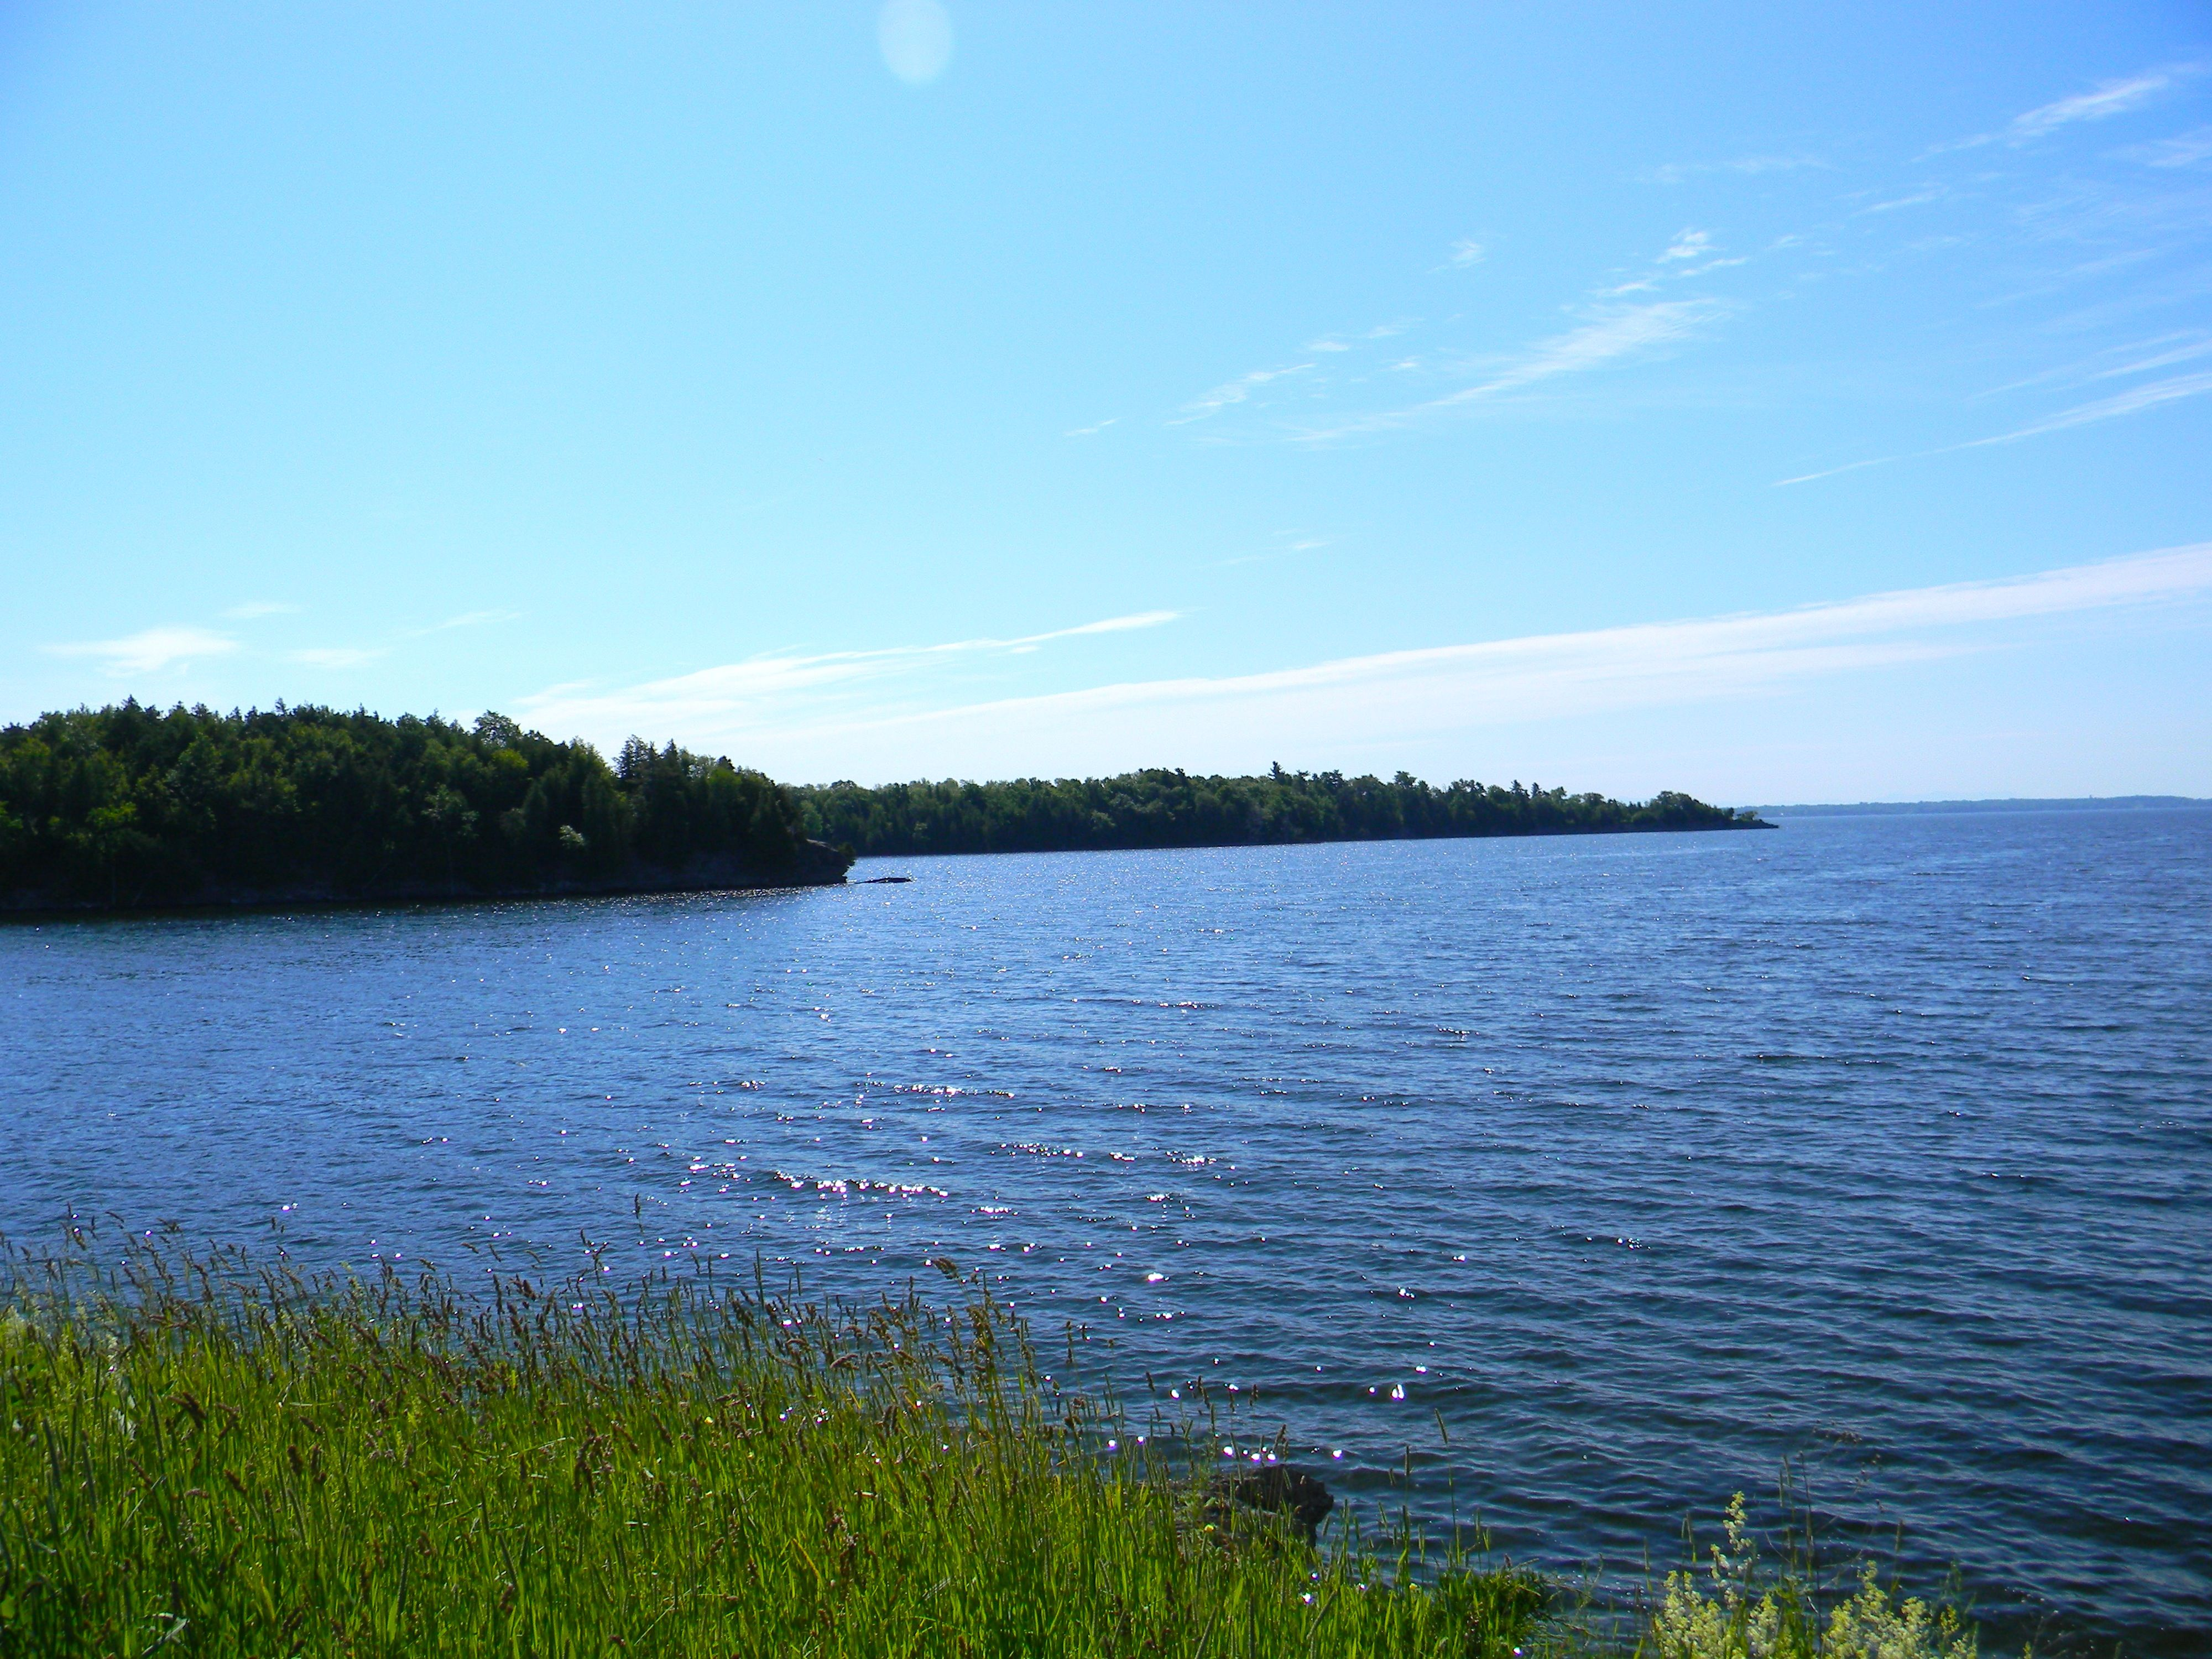 Point Au Roche State Park S Trails And Beaches Offer Magnificent Views Of Lake Champlain Www Goadirondack